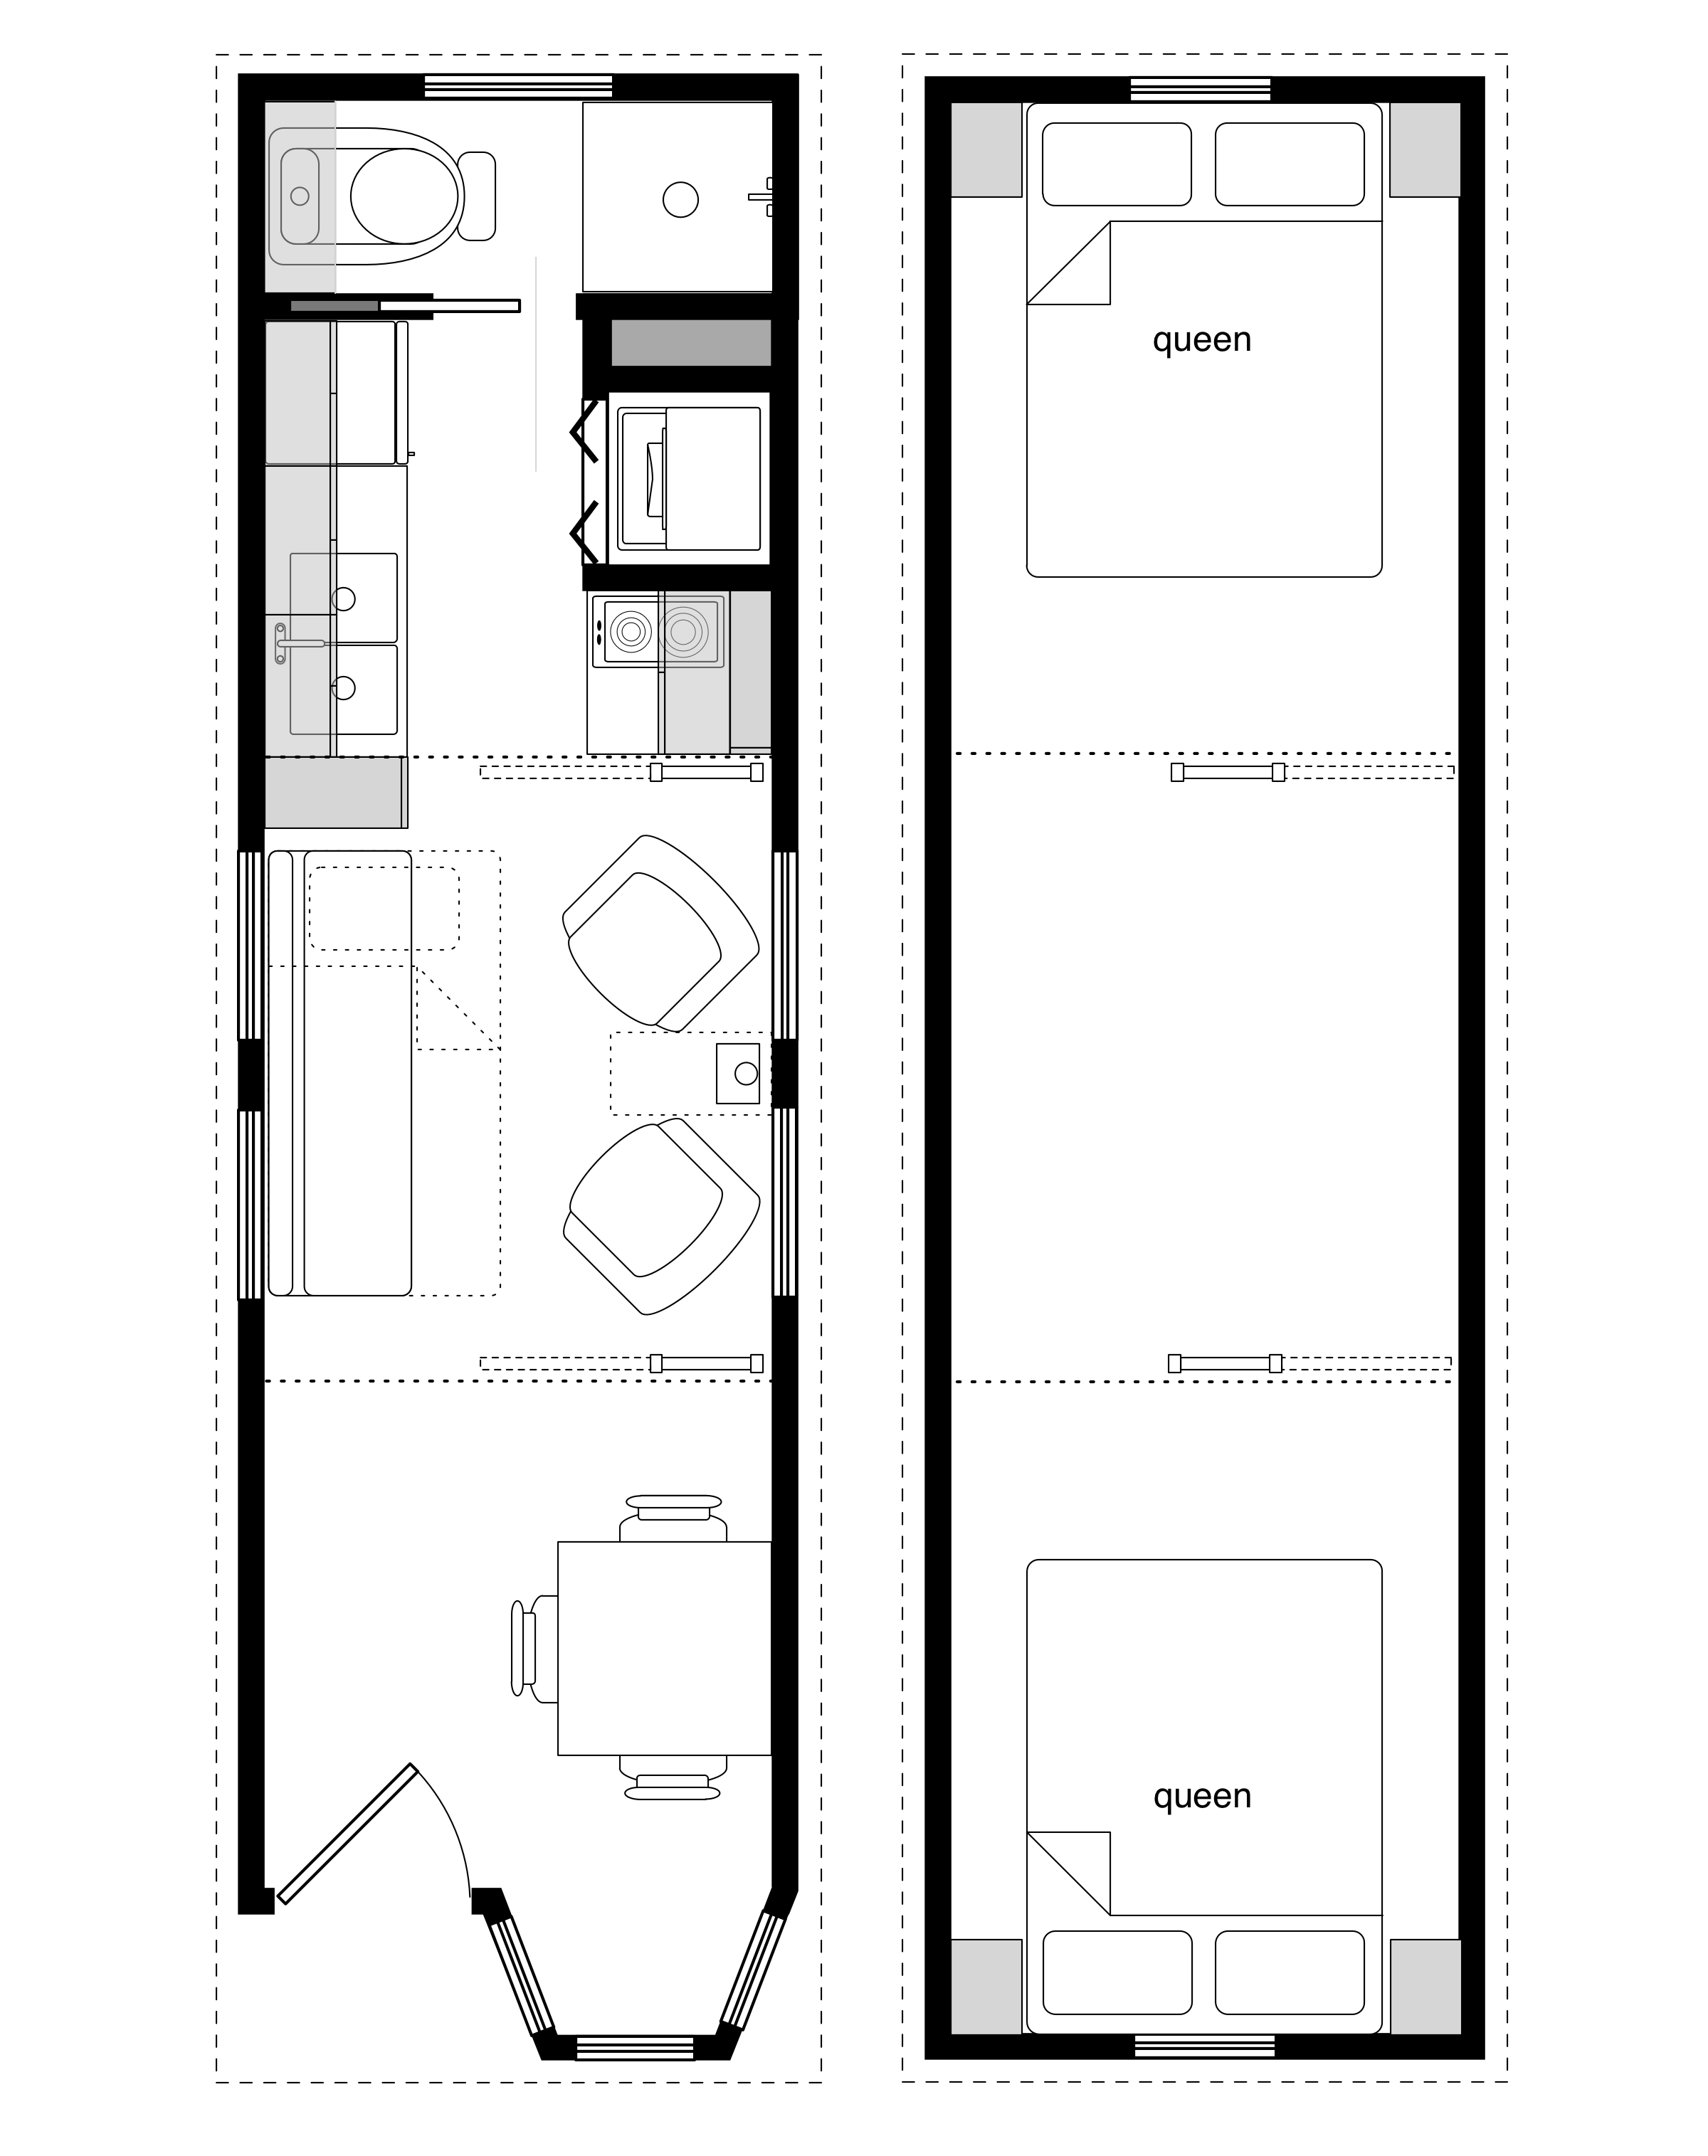 coastal cottage tiny house framing plans tiny house. Black Bedroom Furniture Sets. Home Design Ideas